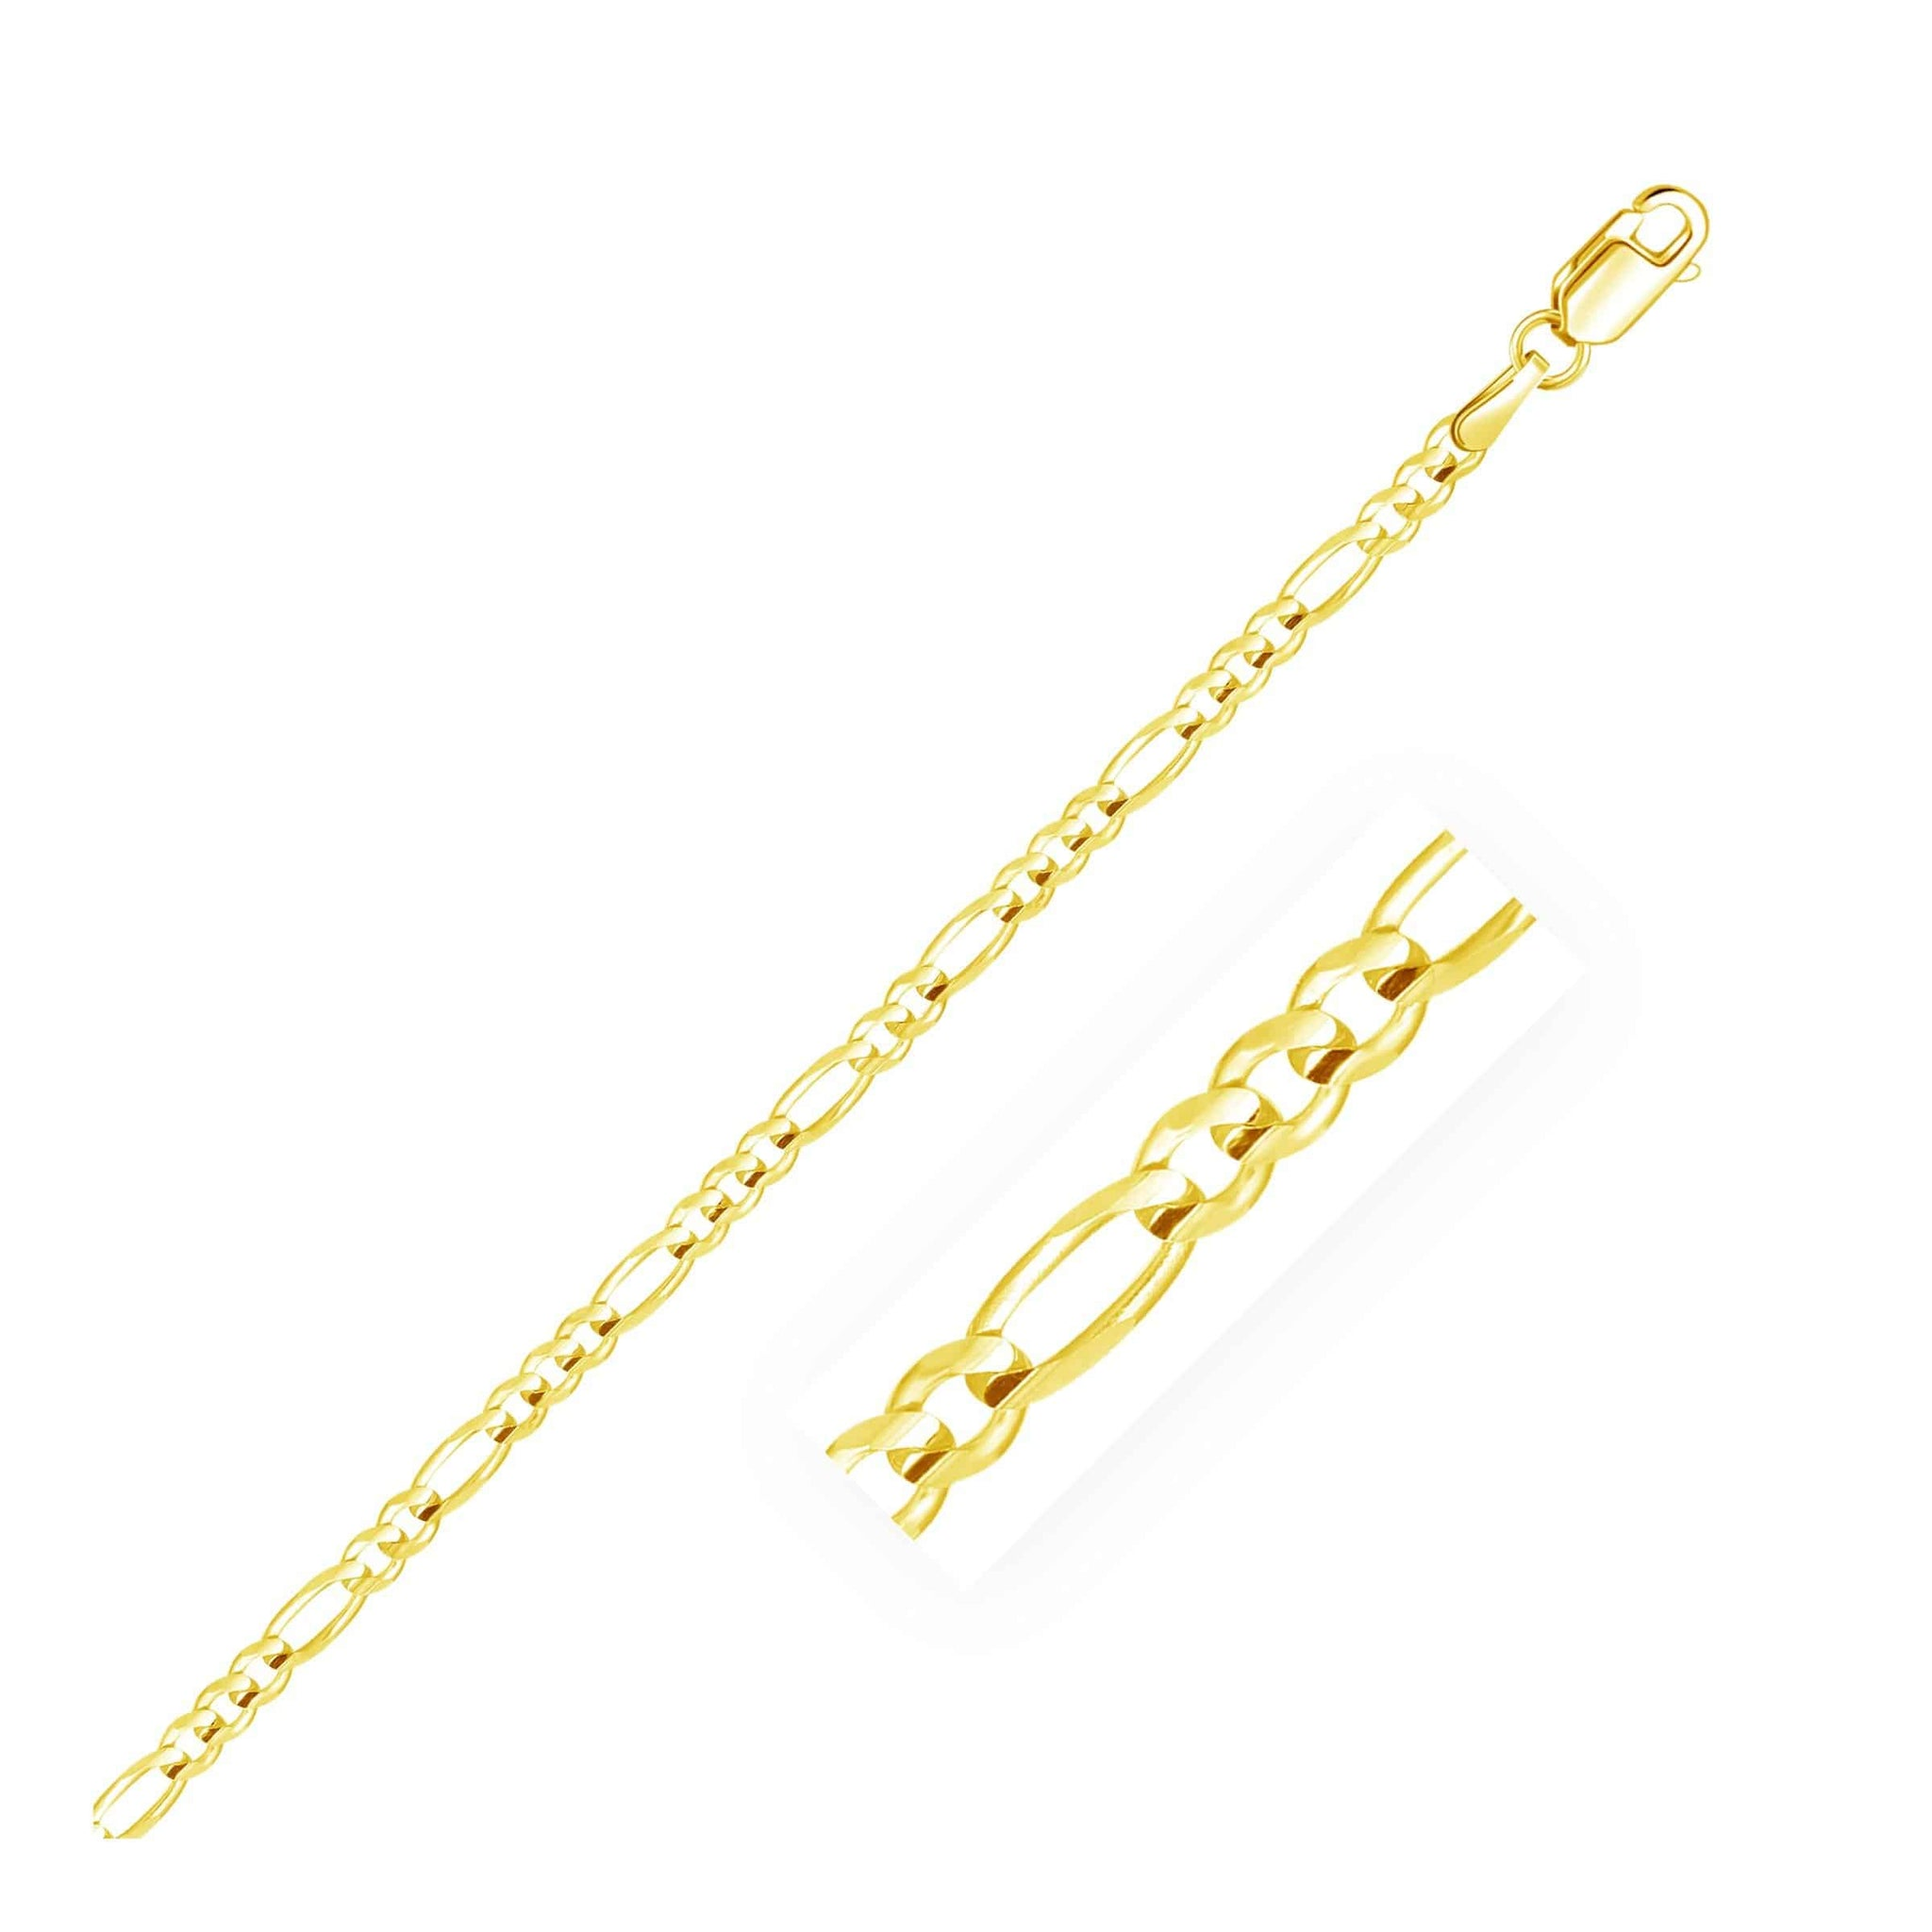 3.1mm 14k Yellow Gold Solid Figaro Bracelet